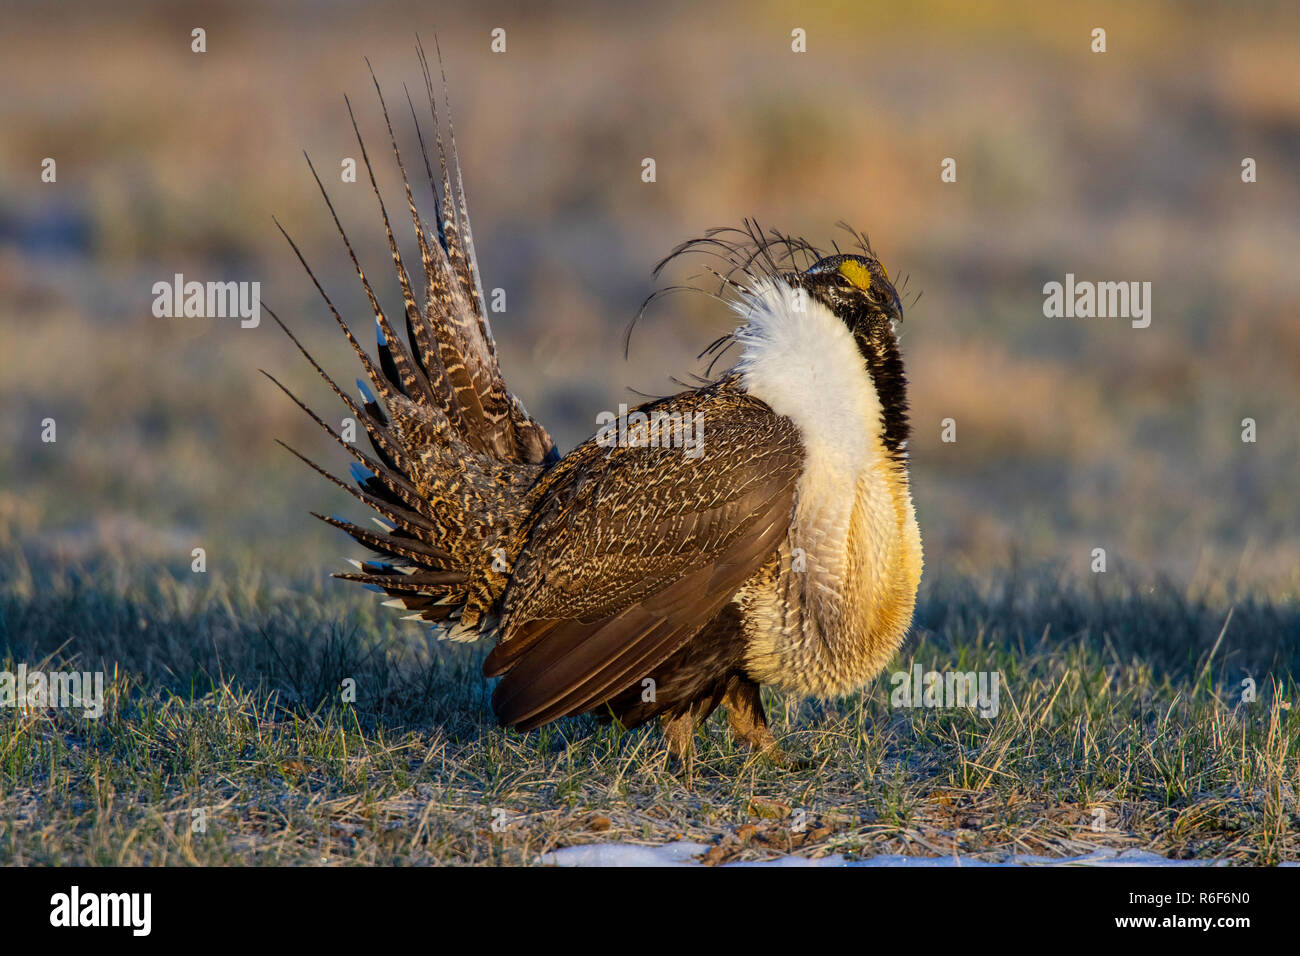 Greater Sage-Grouse  Centrocercus urophasianus SE of Walden, Colorado, United States 22 April 2018       Adult Male       Phasianidae - Stock Image